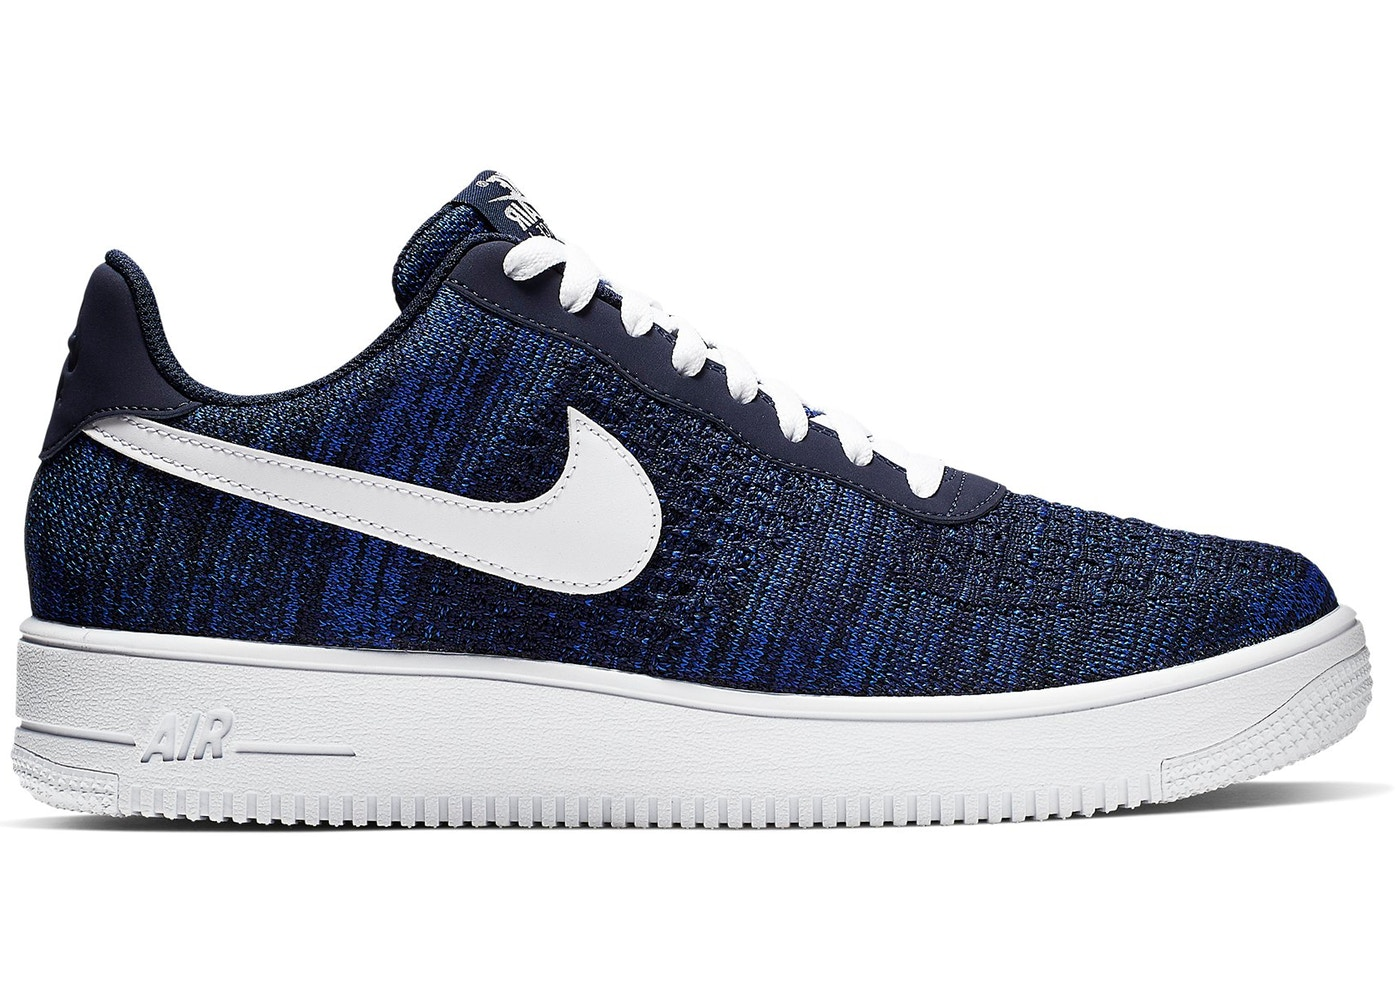 f7afe0dbf Buy Nike Air Force 1 Shoes   Deadstock Sneakers